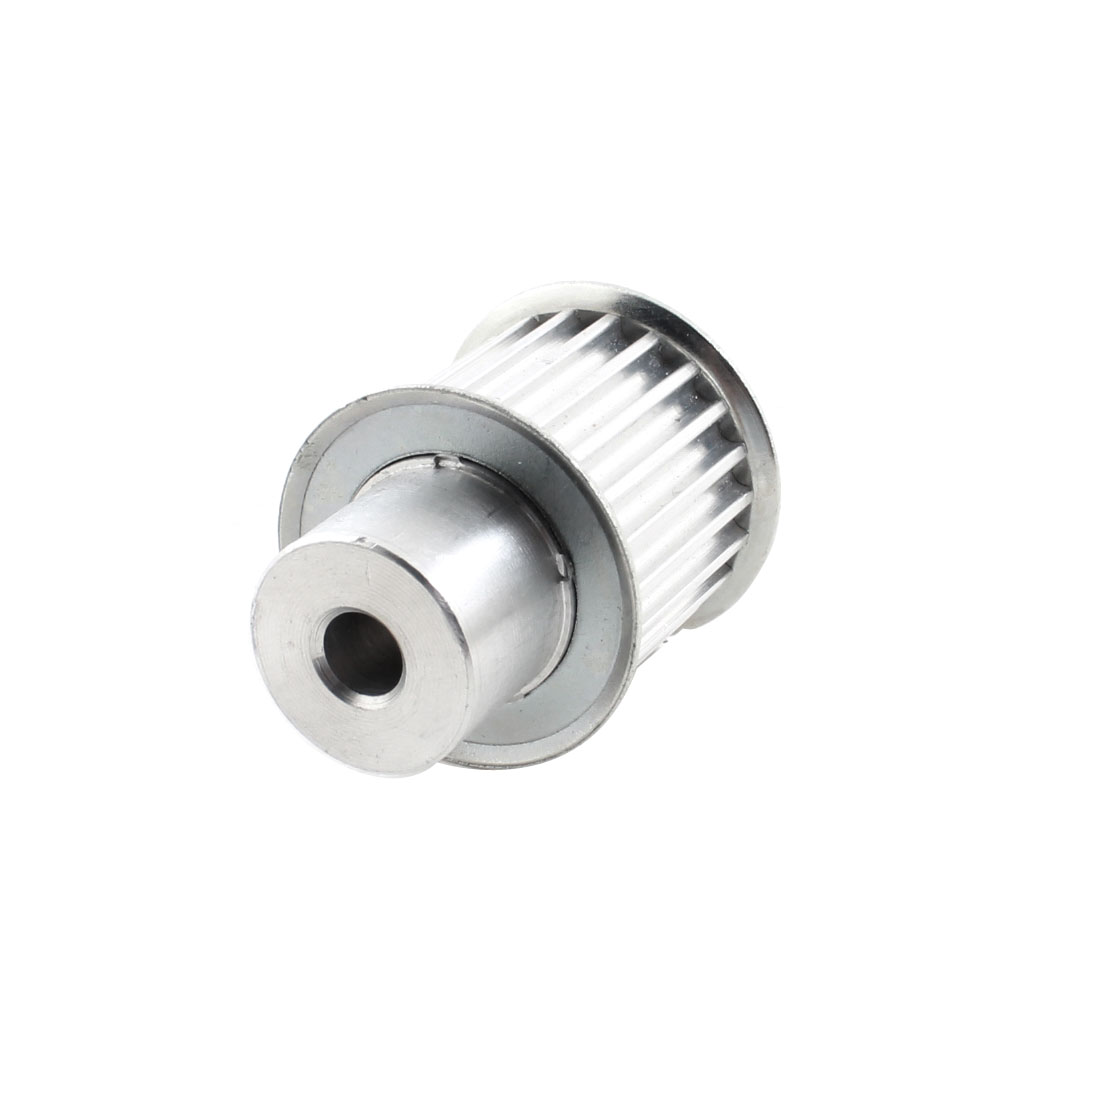 5M 22-Tooth 8mm Pilot Bore 5mm Pitch Aluminum Alloy Dual Flanged Motor Synchronous Timing Pulley for 22mm Width Belt